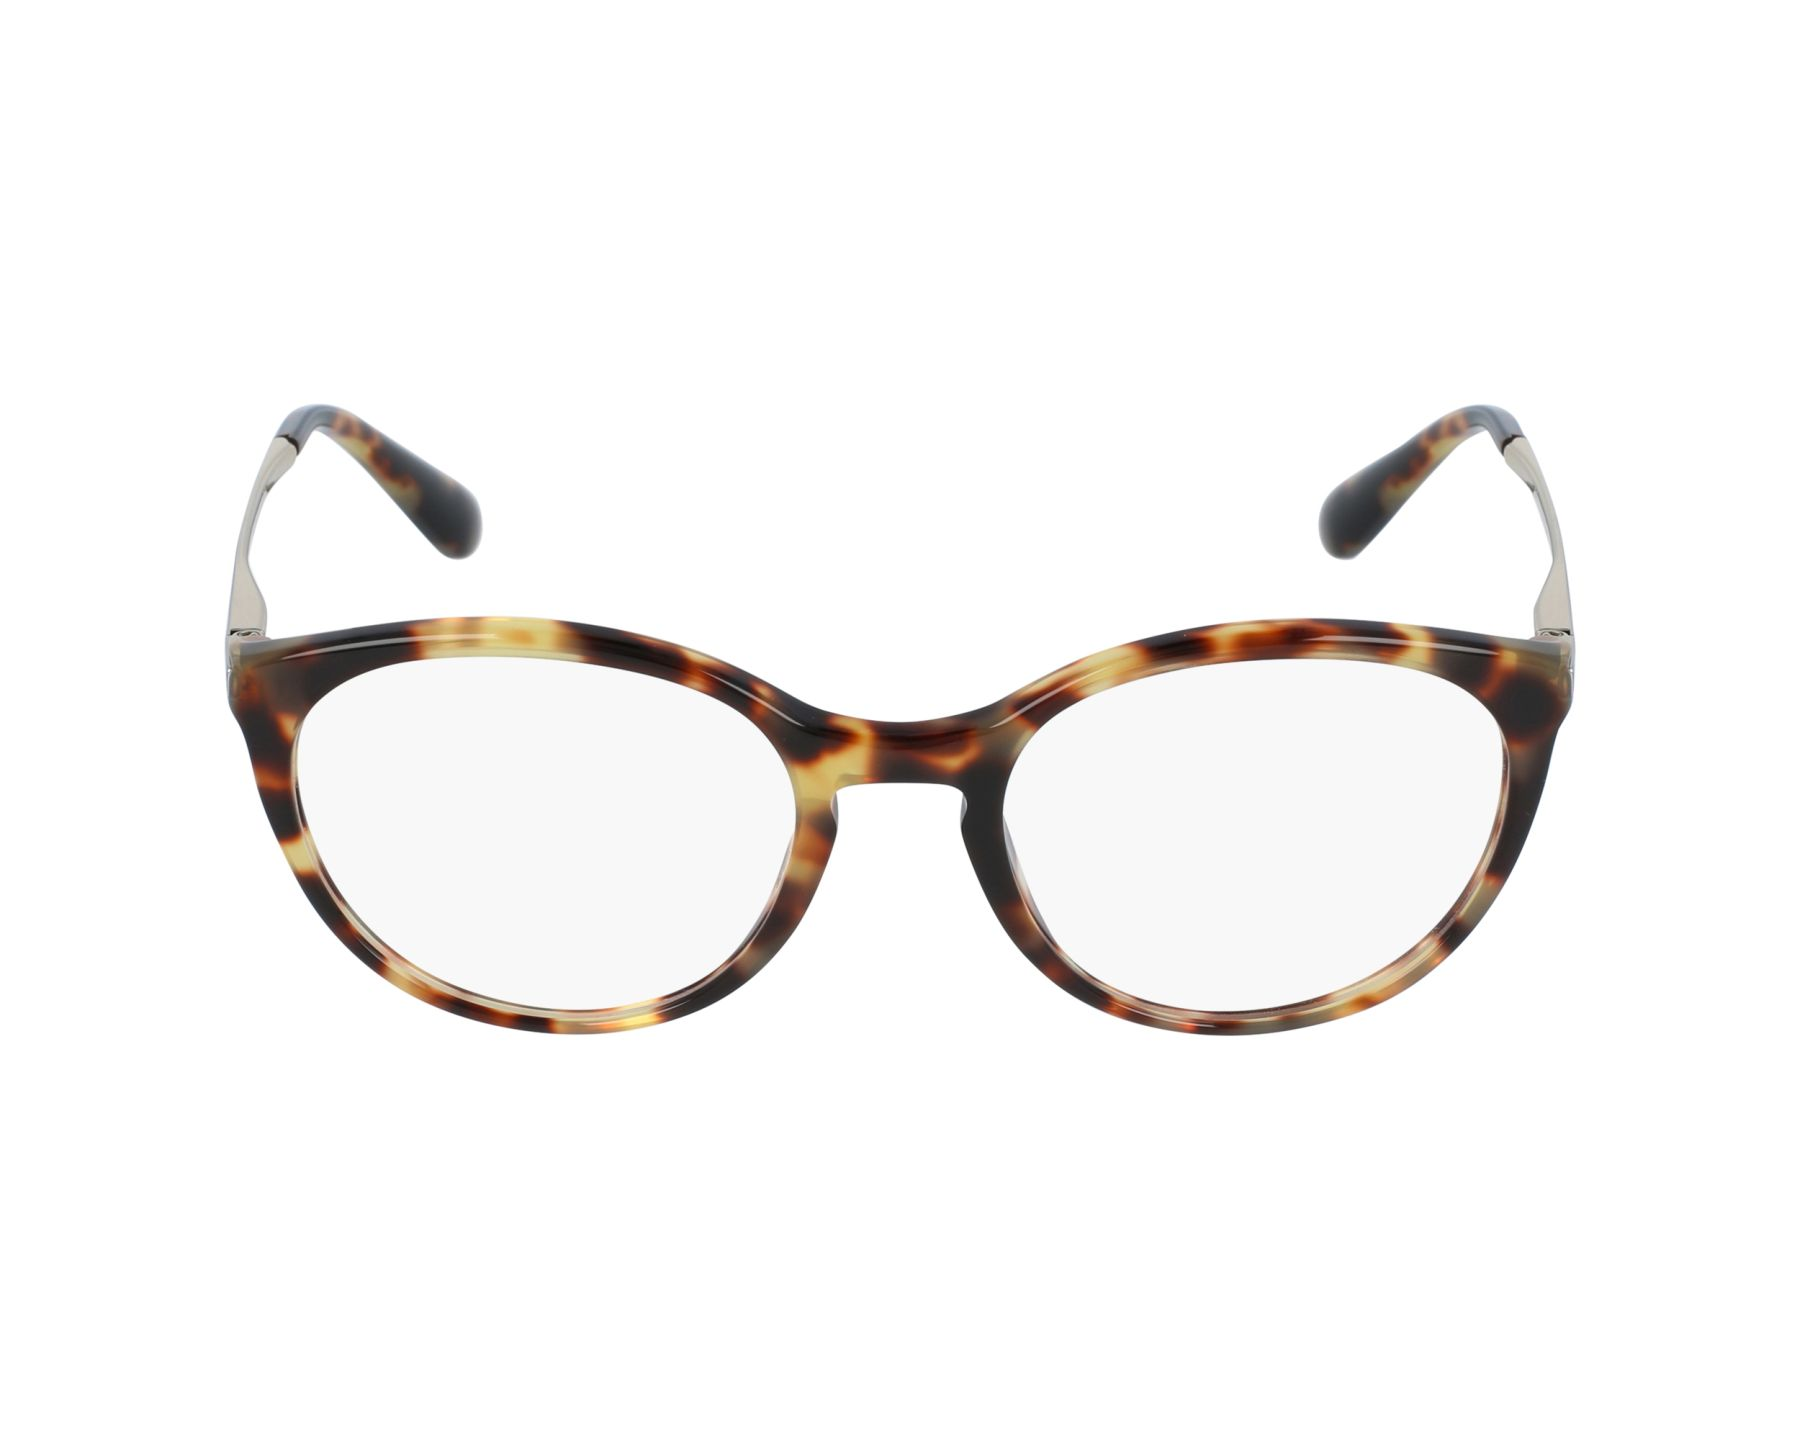 046beaed eyeglasses Dolce & Gabbana DG-3242 512 50-18 Havana Gold profile view